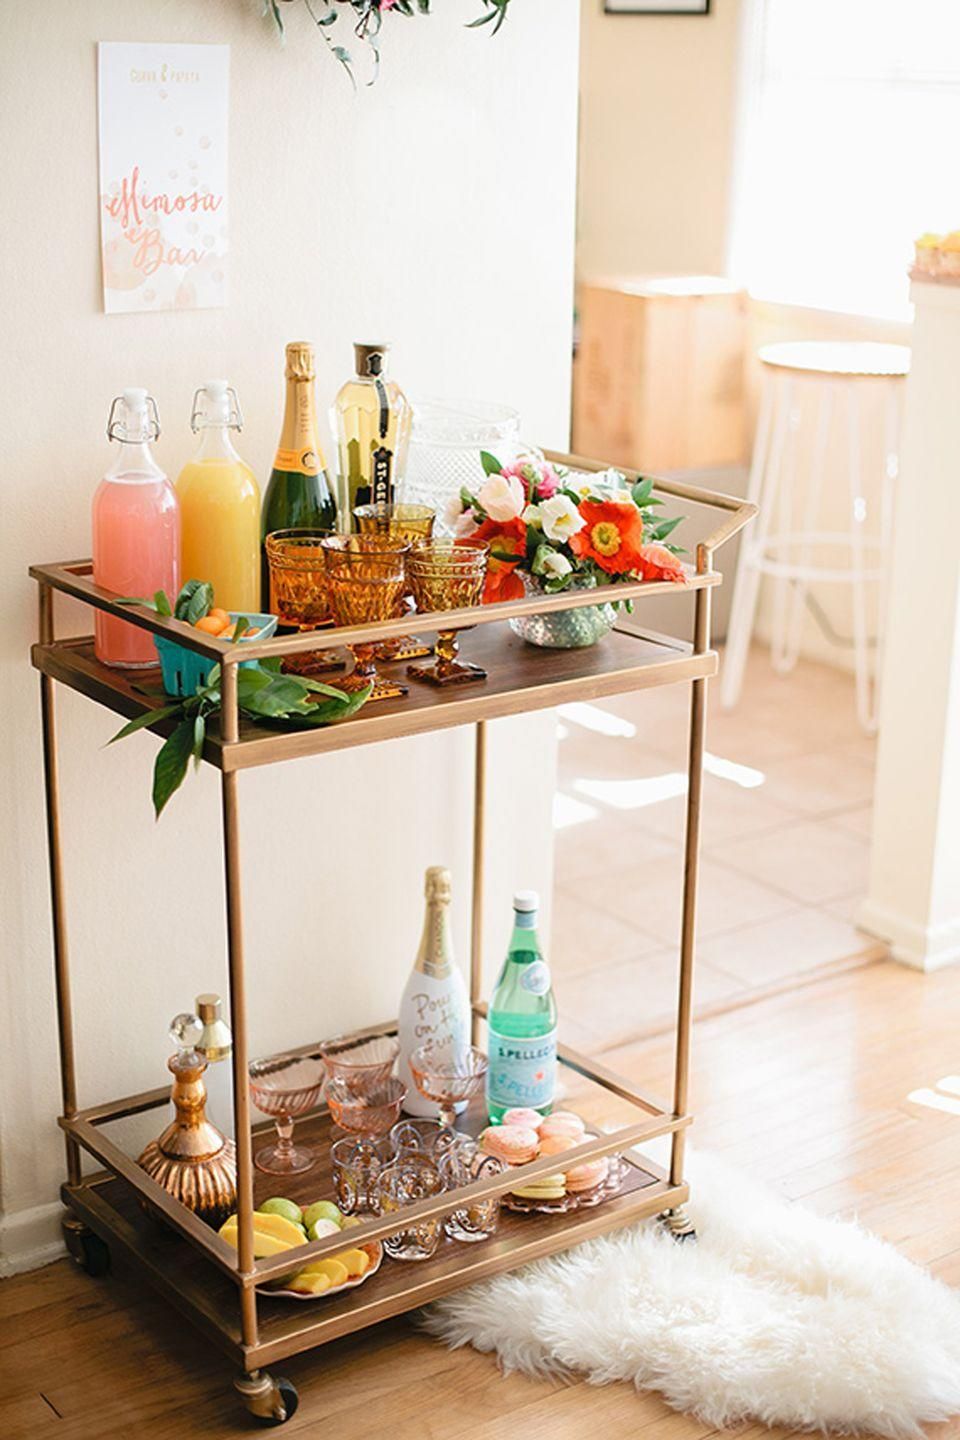 """<p>Every perfectly curated mimosa bar needs stunning glassware guests can fill up. Champagne flutes or coupes are solid choices, but you can always go with anything from tumblers to the nice glass set in your cabinet you've been dying to break out.</p><p>See more at <a href=""""http://www.100layercake.com/blog/2015/04/01/easter-brunch-inspiration-spring-party-ideas/"""" rel=""""nofollow noopener"""" target=""""_blank"""" data-ylk=""""slk:100 Layers of Cake"""" class=""""link rapid-noclick-resp"""">100 Layers of Cake</a>.<br></p>"""